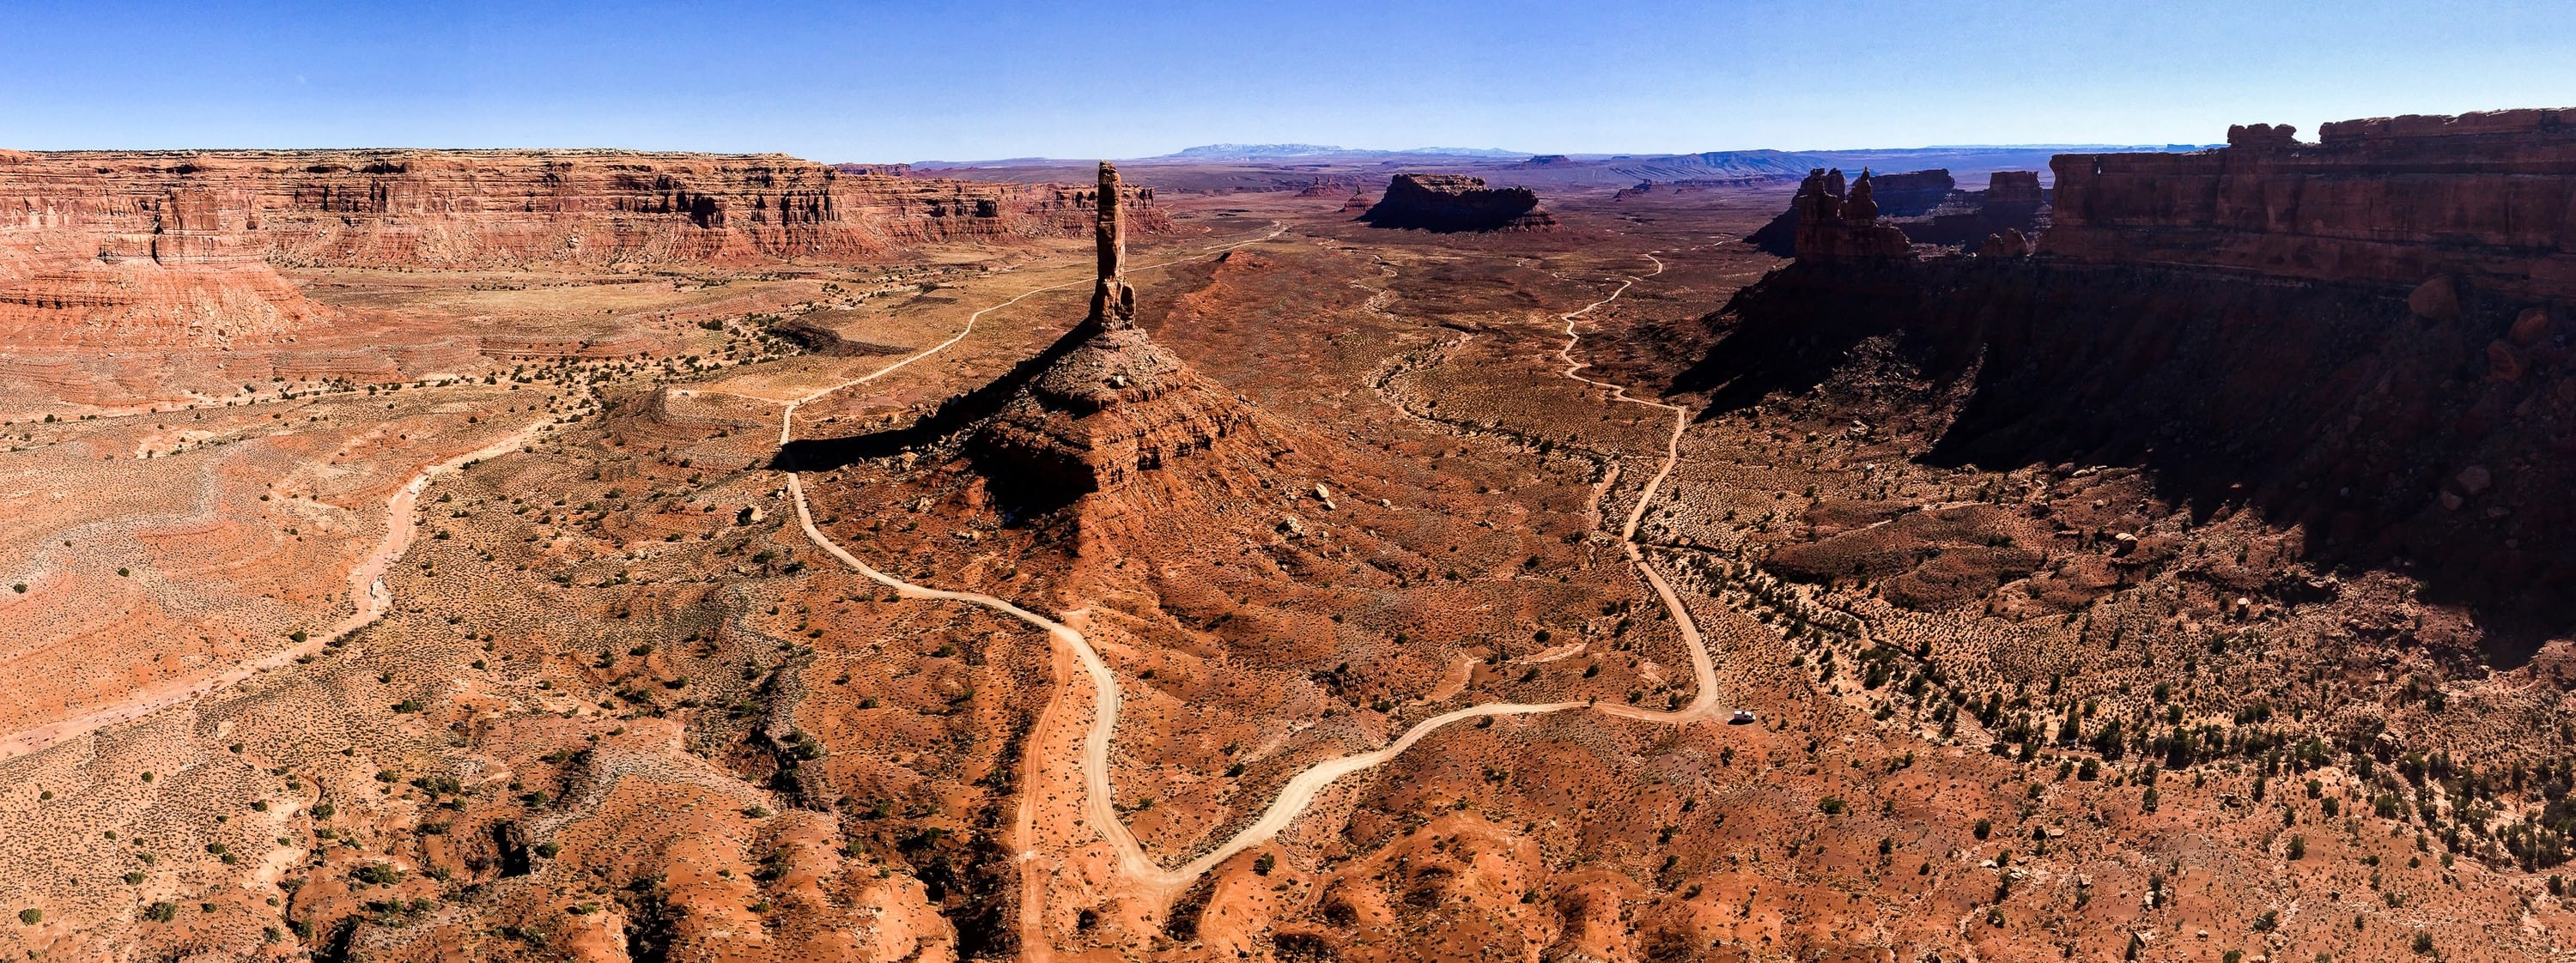 Eagle Plum Tower, Valley of the Gods. Photo: Jonathan Thesenga